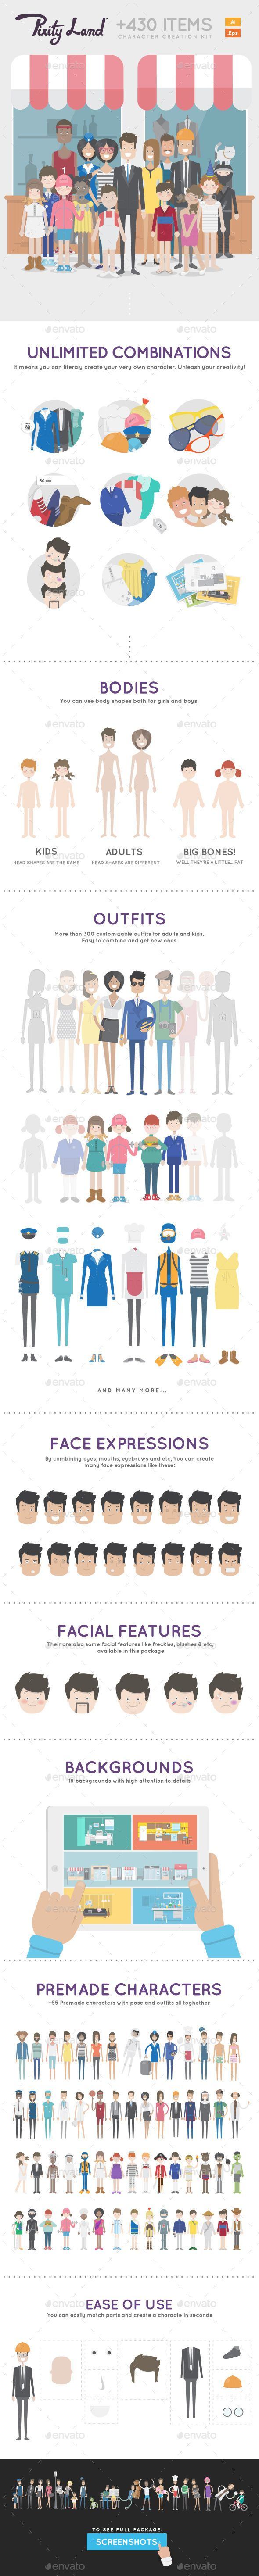 Pixity Character Creator Kit - People Characters.  Create groups of graphic designs that businesses or graphic designers for businesses want to buy.